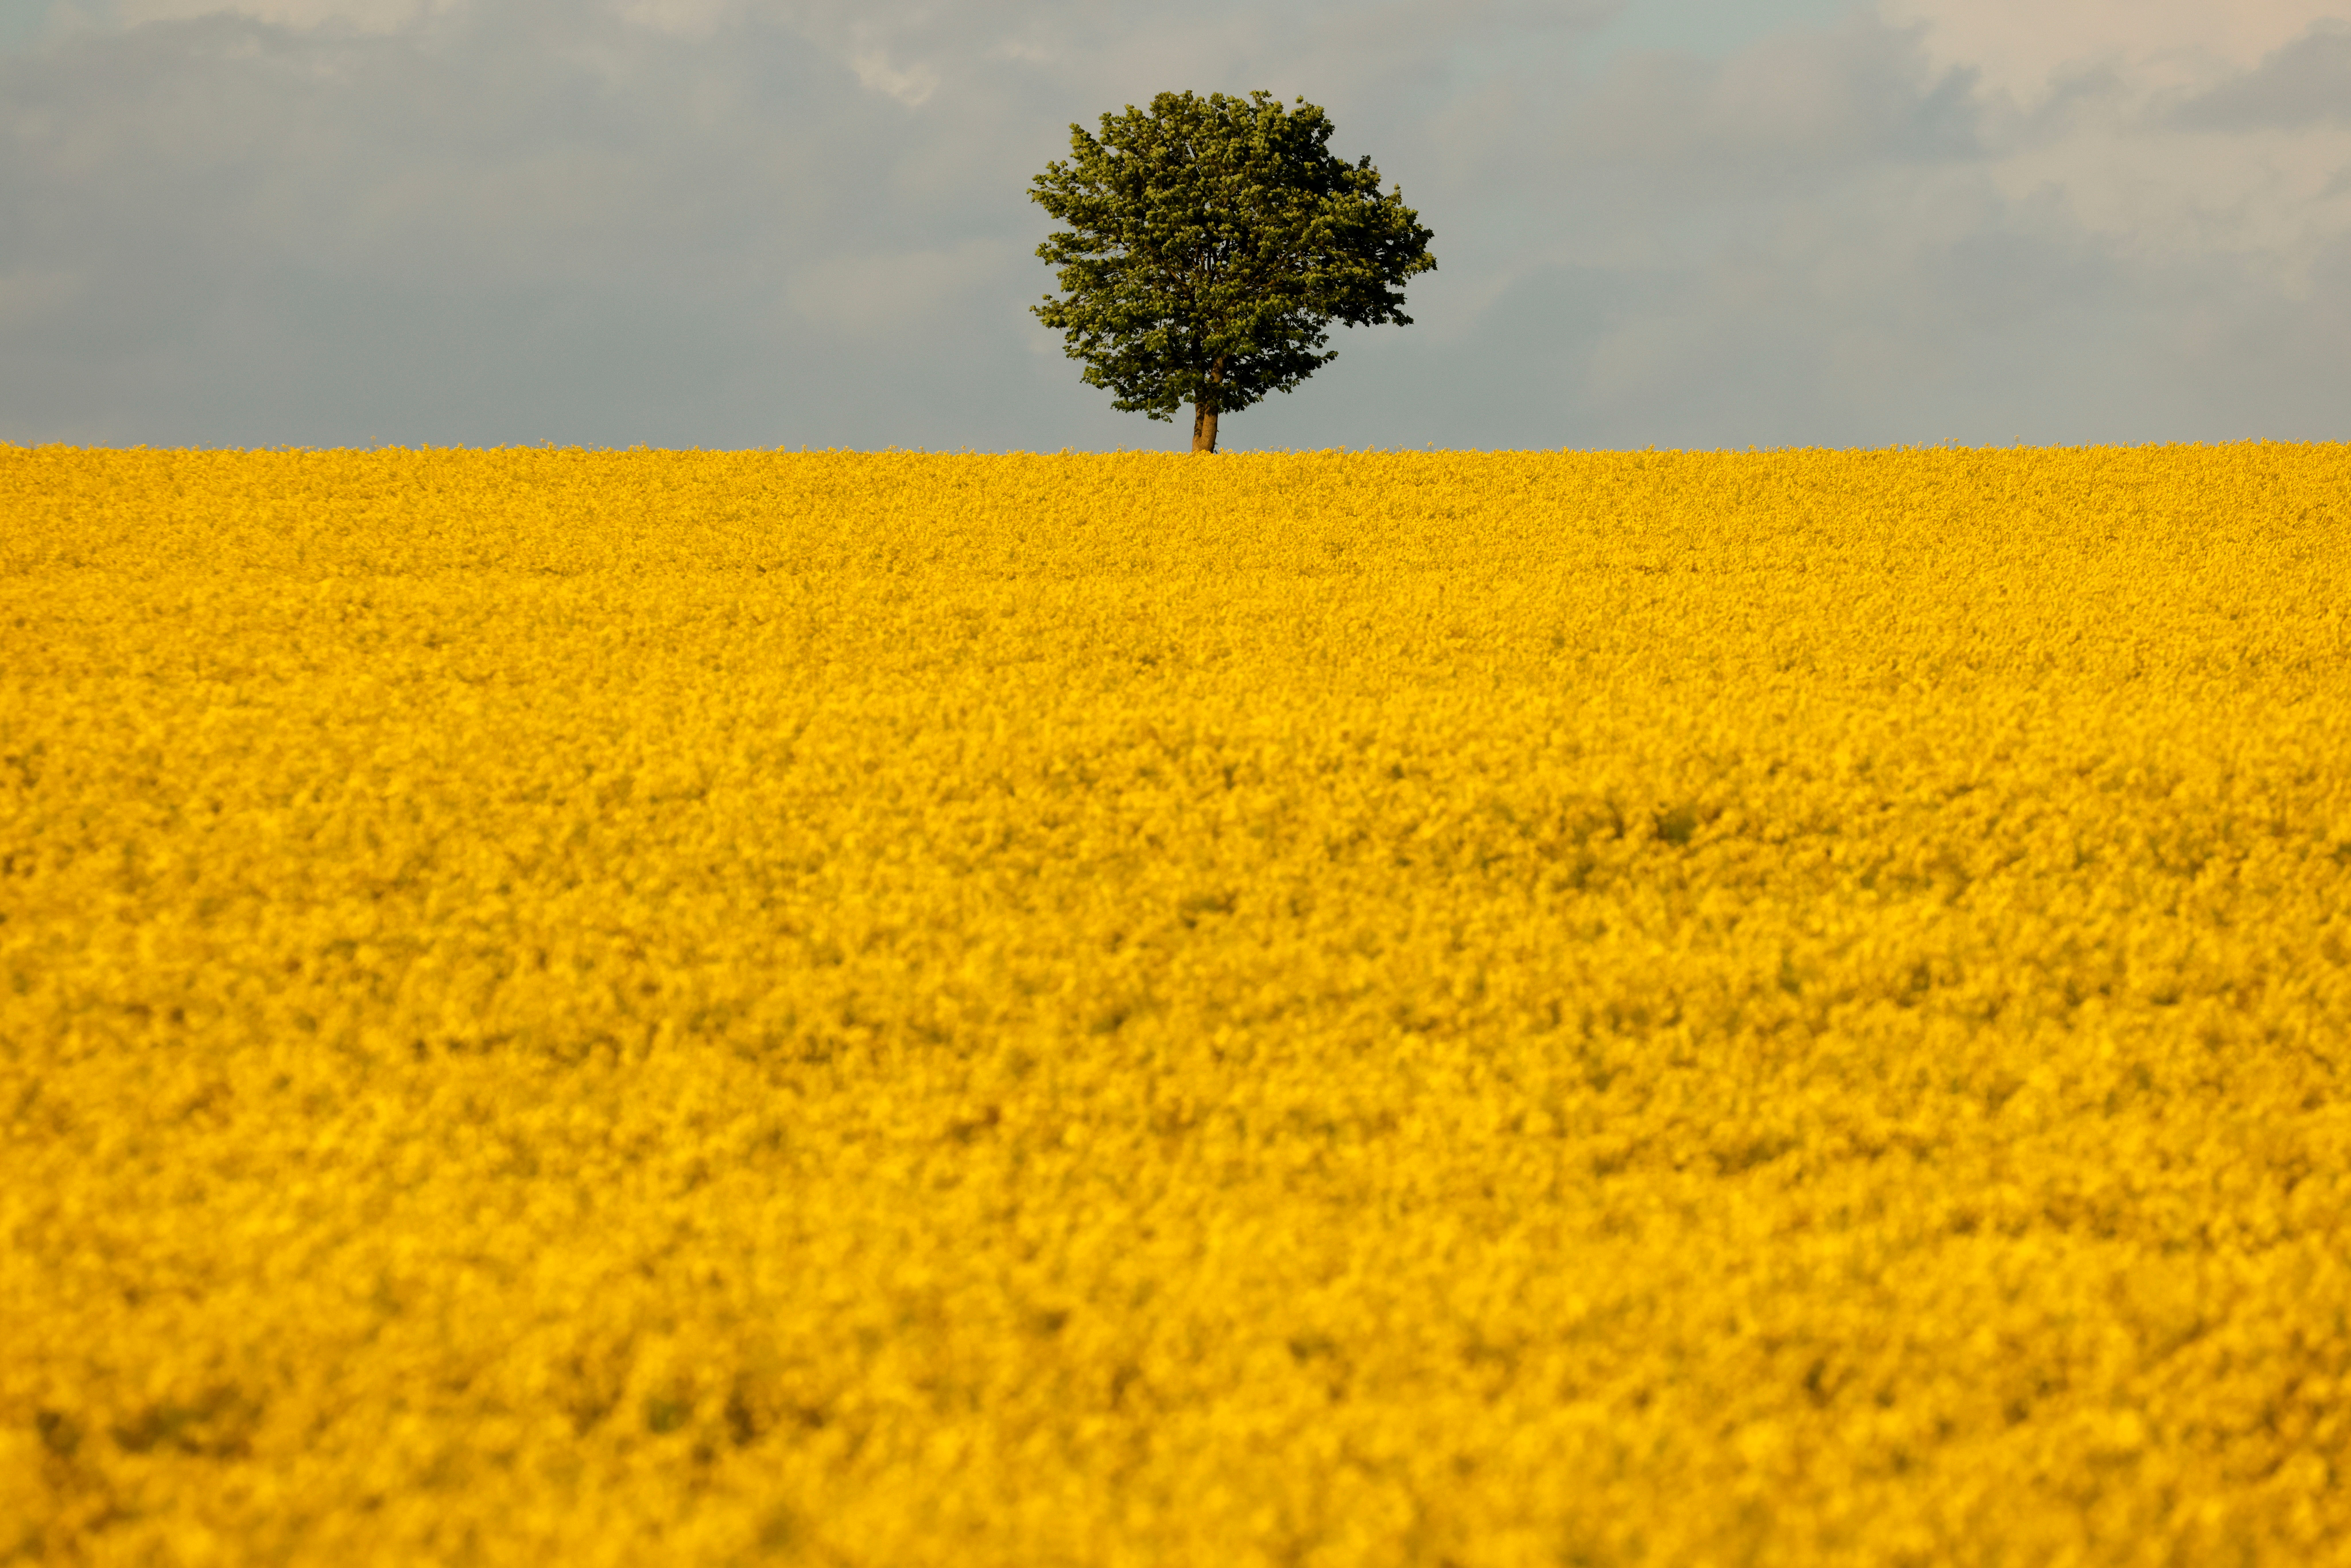 A tree is seen in the middle of a yellow rapeseed field in Marquion, France, May 15, 2021. REUTERS/Pascal Rossignol/File Photo